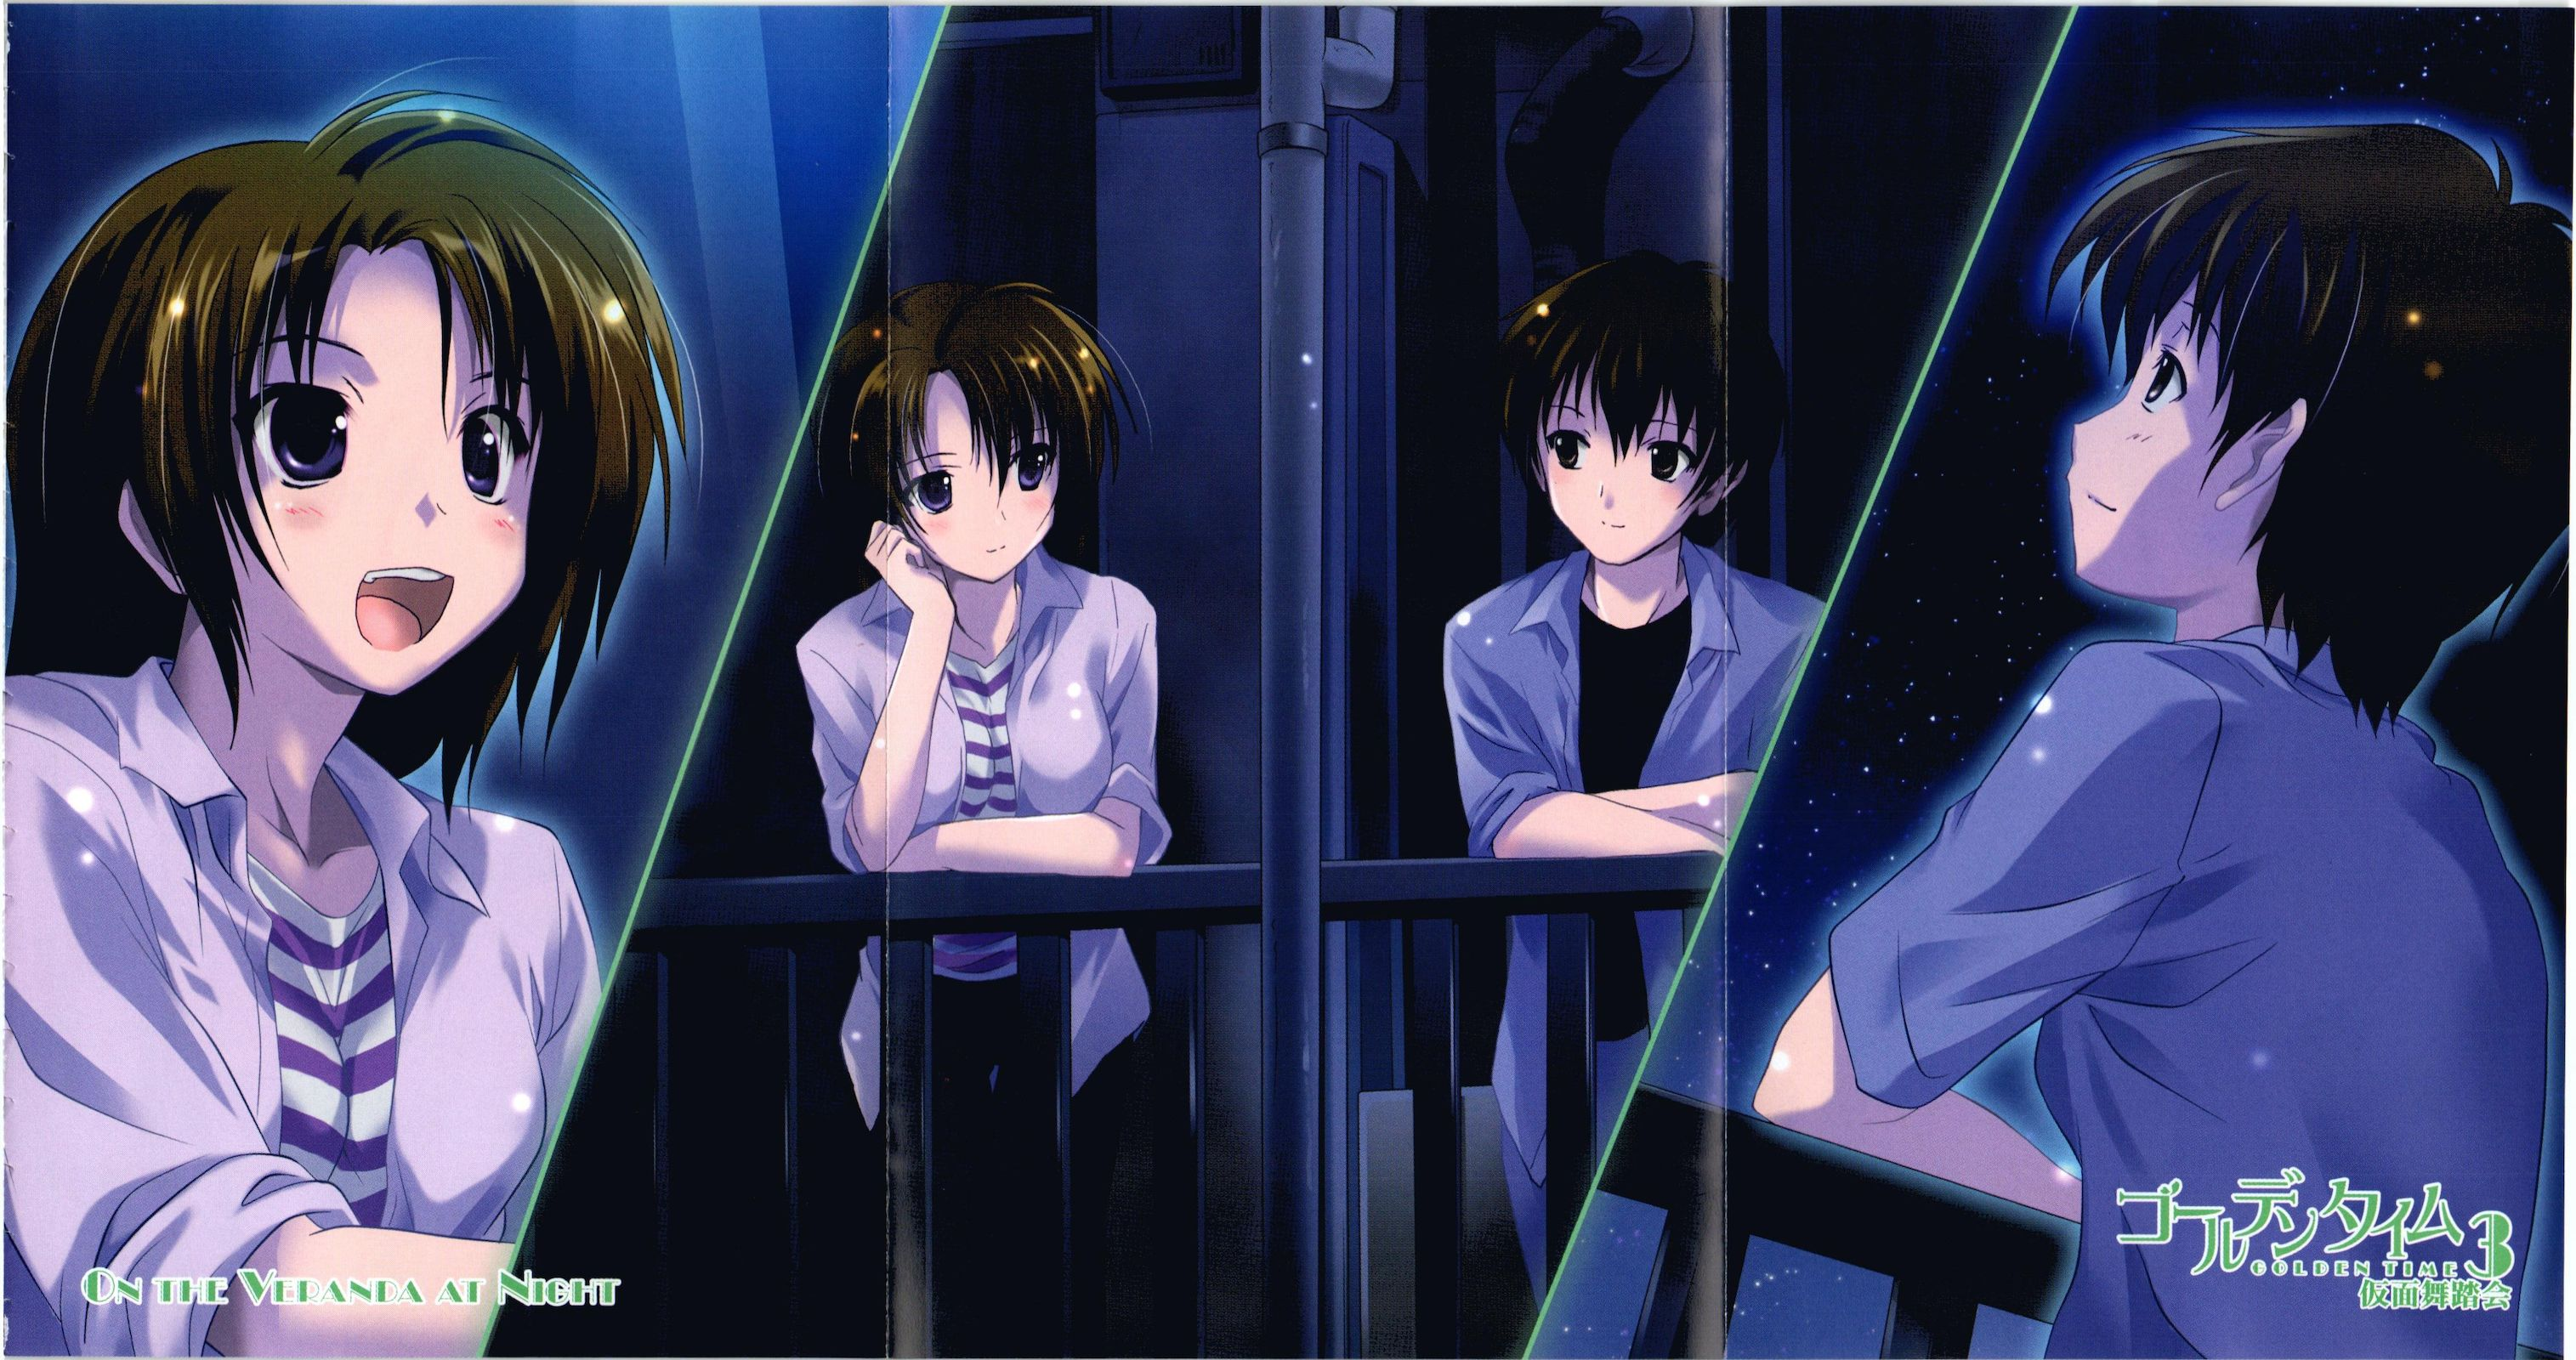 Tada Banri - Golden Time - Zerochan Anime Image Board